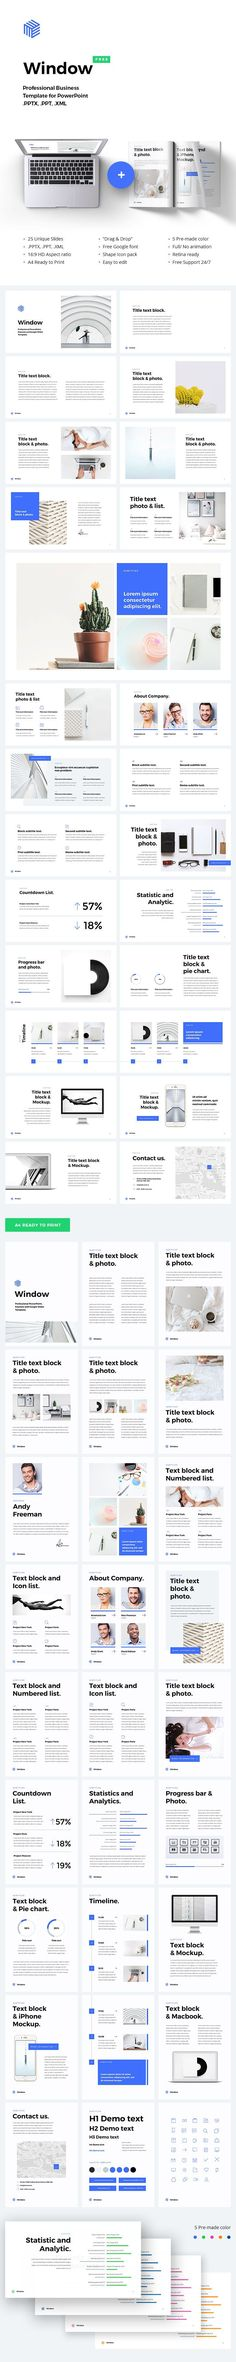 powerpoint flyer template. online education flyer templates, Modern powerpoint